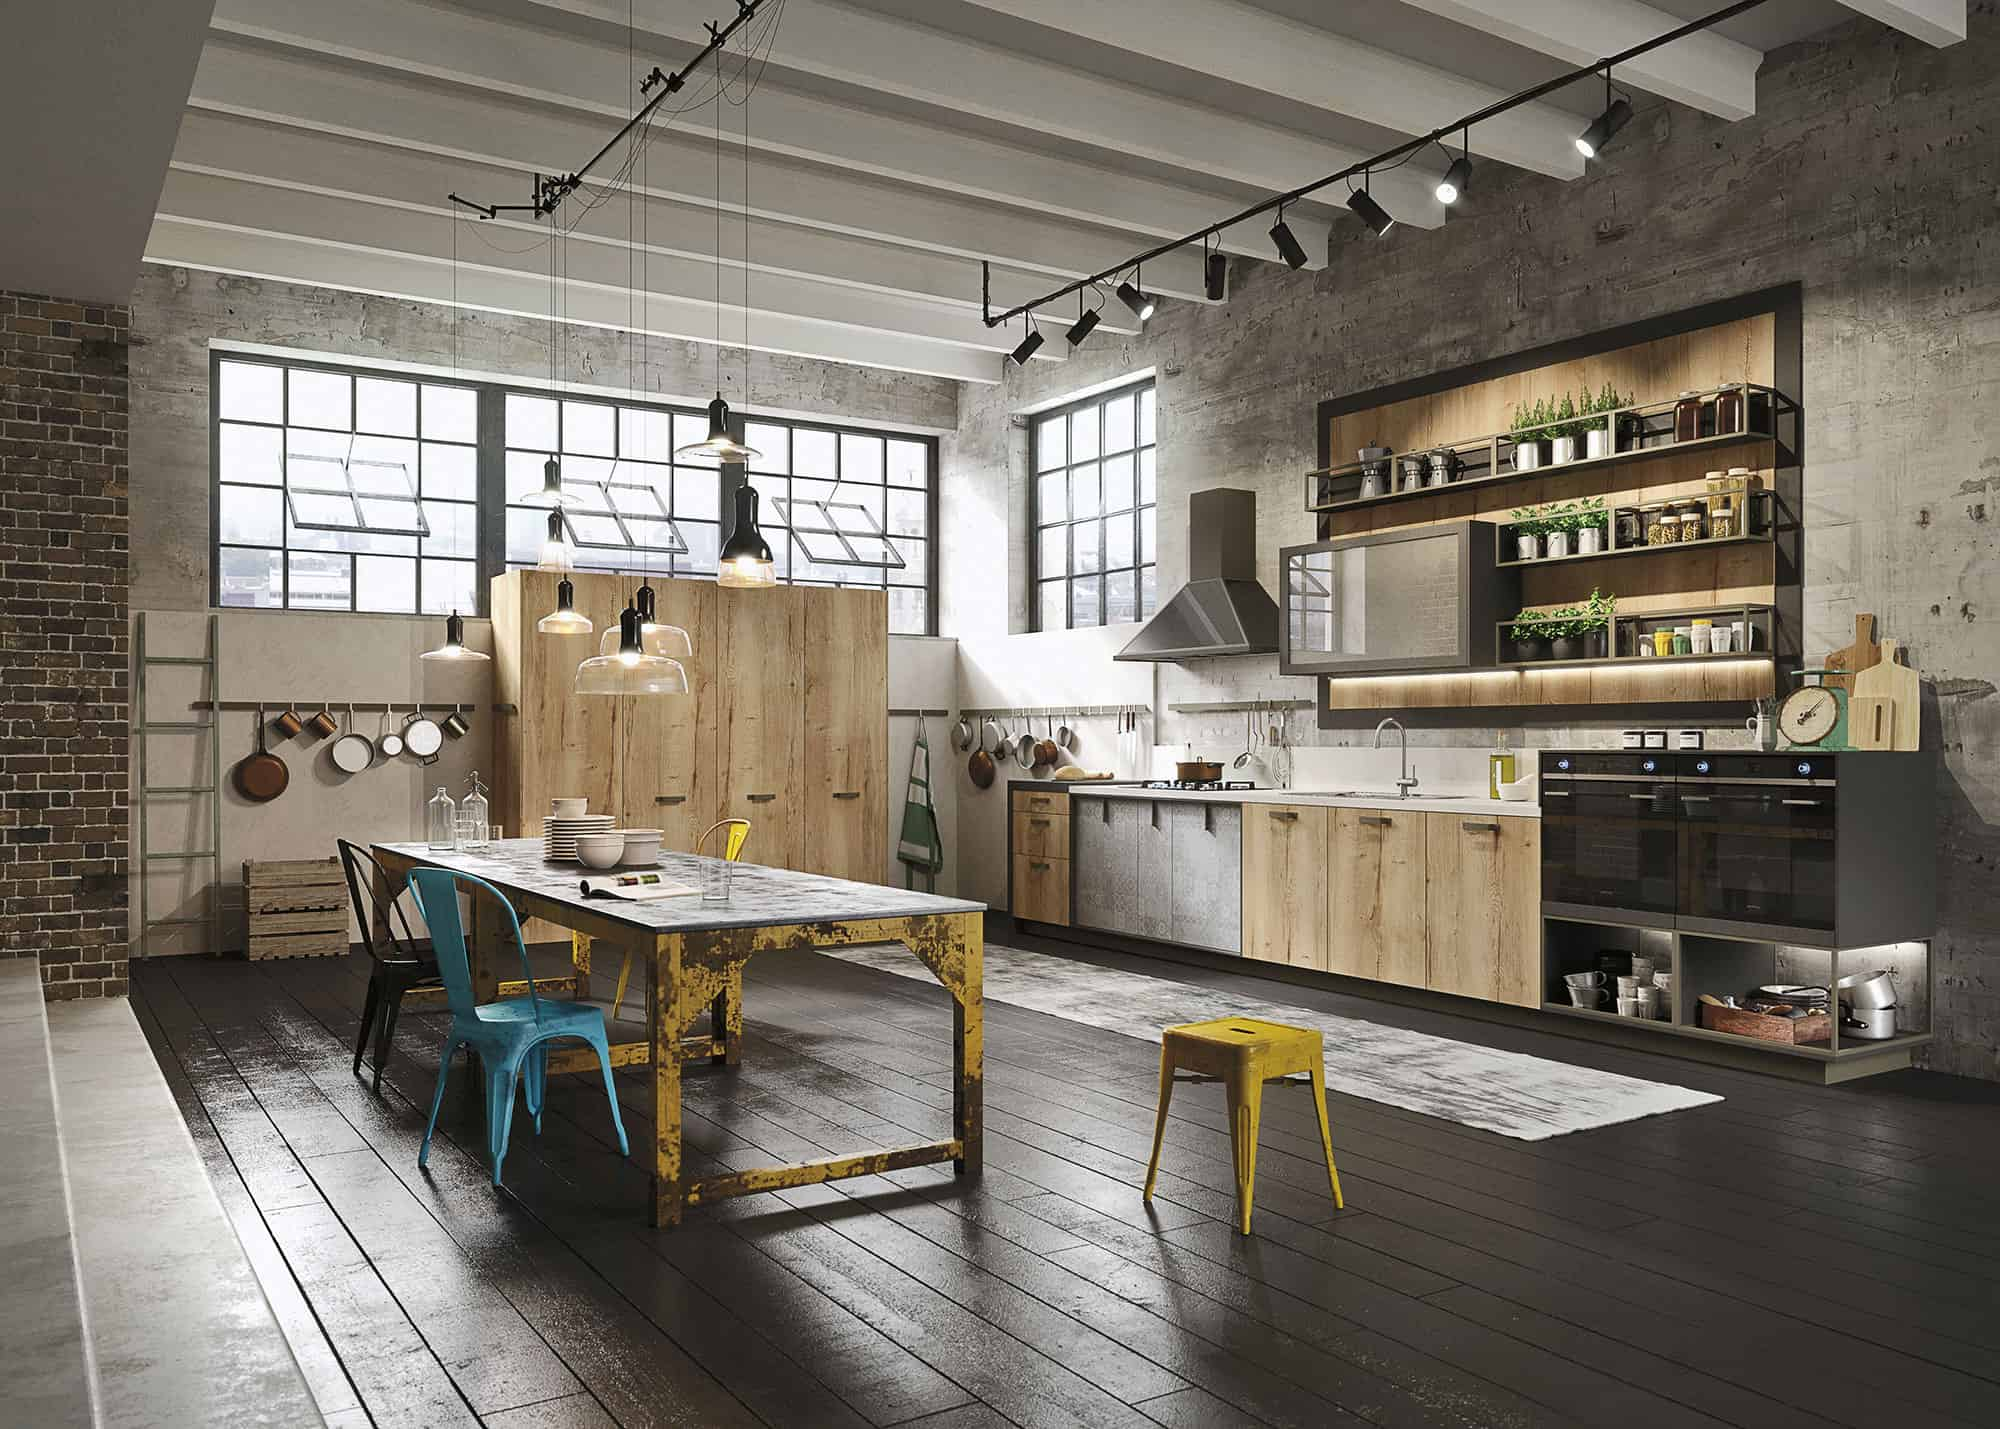 Big Loft Kitchen Design For Lofts 3 Urban Ideas From Snaidero